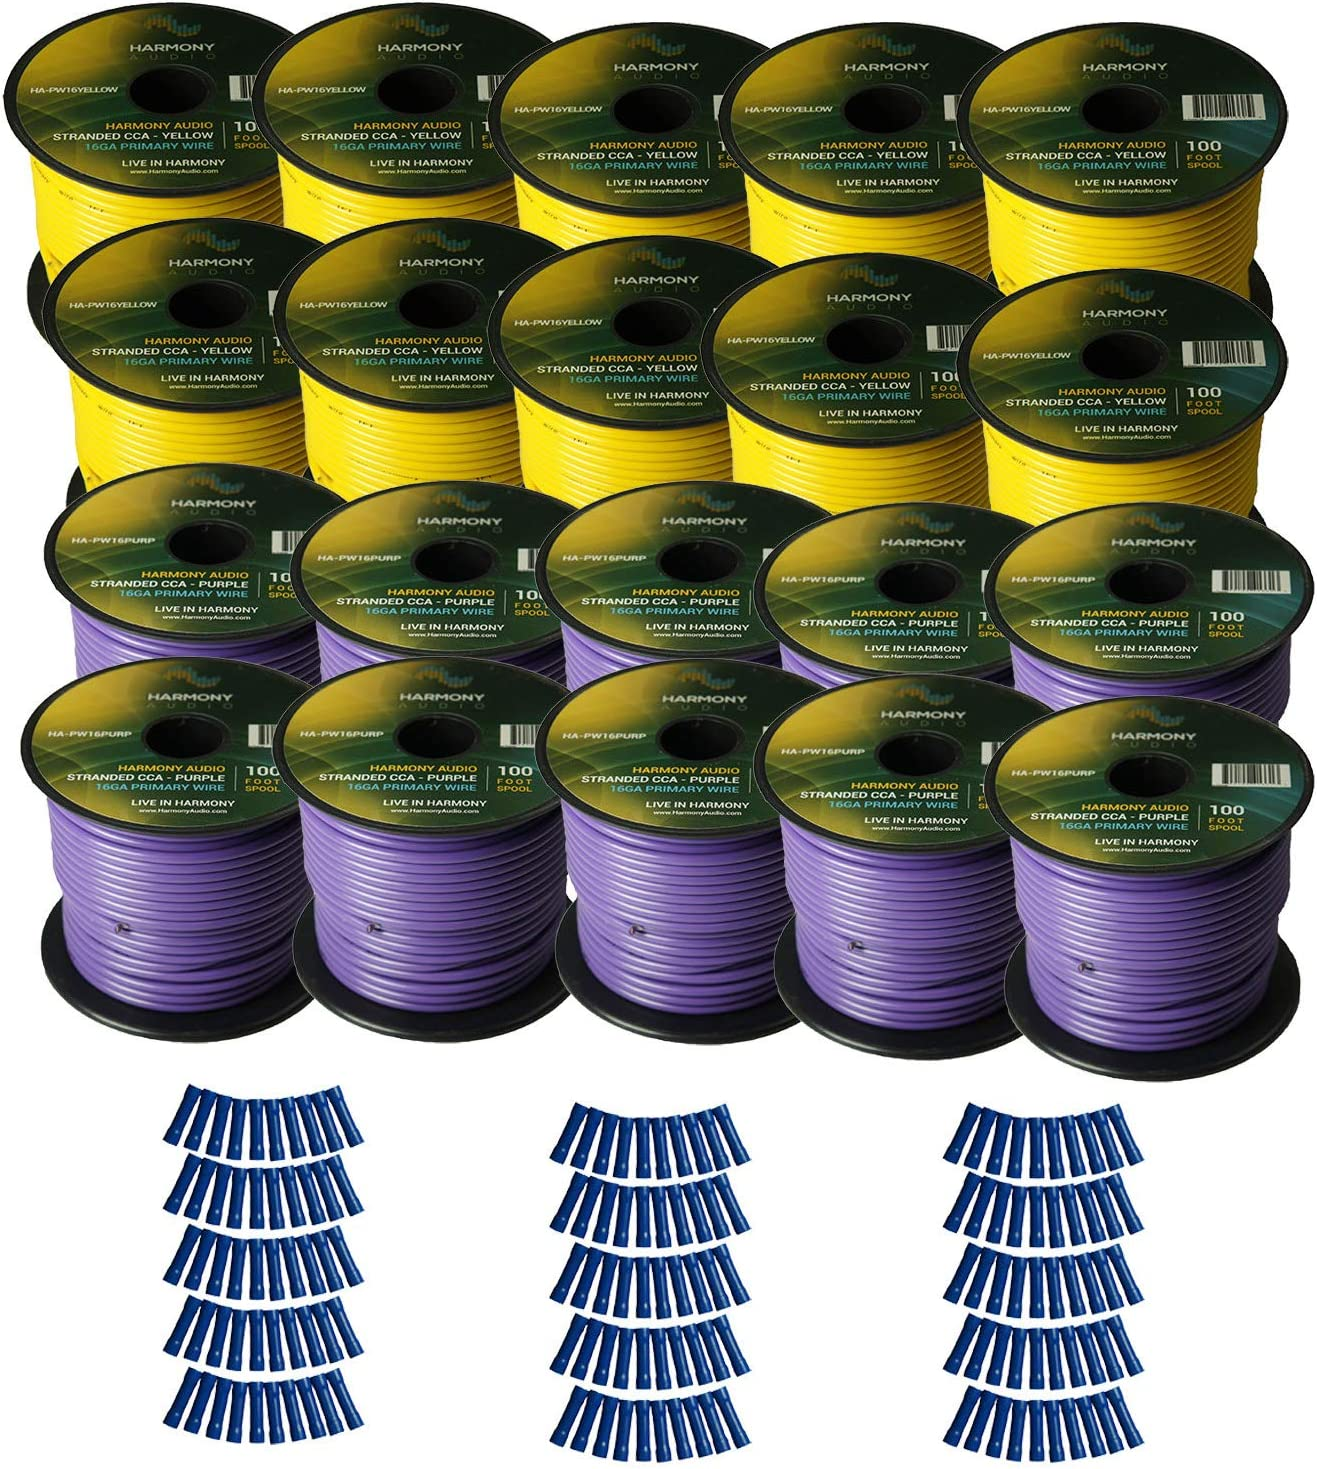 Harmony Audio Primary Single Conductor 16 Gauge Power or Ground Wire - 20 Rolls - 2000 Feet - Yellow & Purple for Car Audio/Trailer/Model Train/Remote